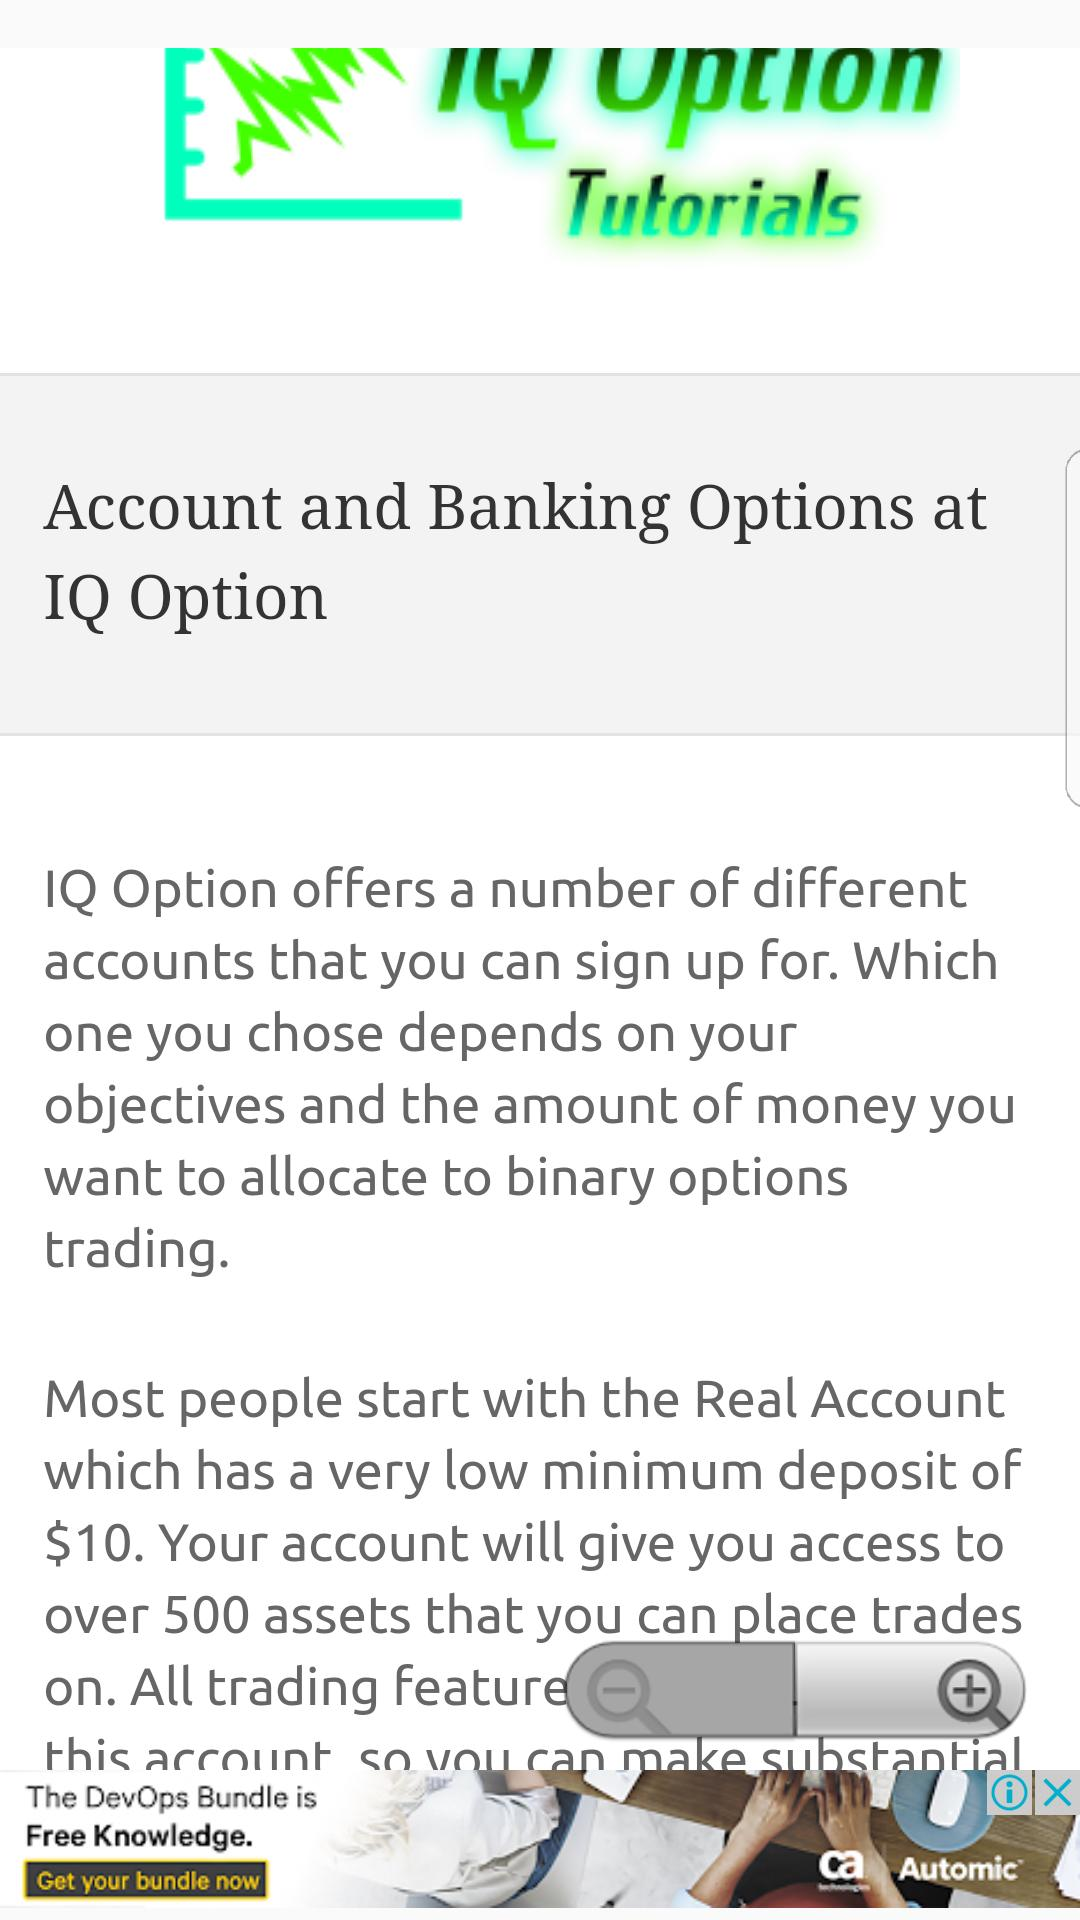 IQ Option Tutorials for Android - APK Download